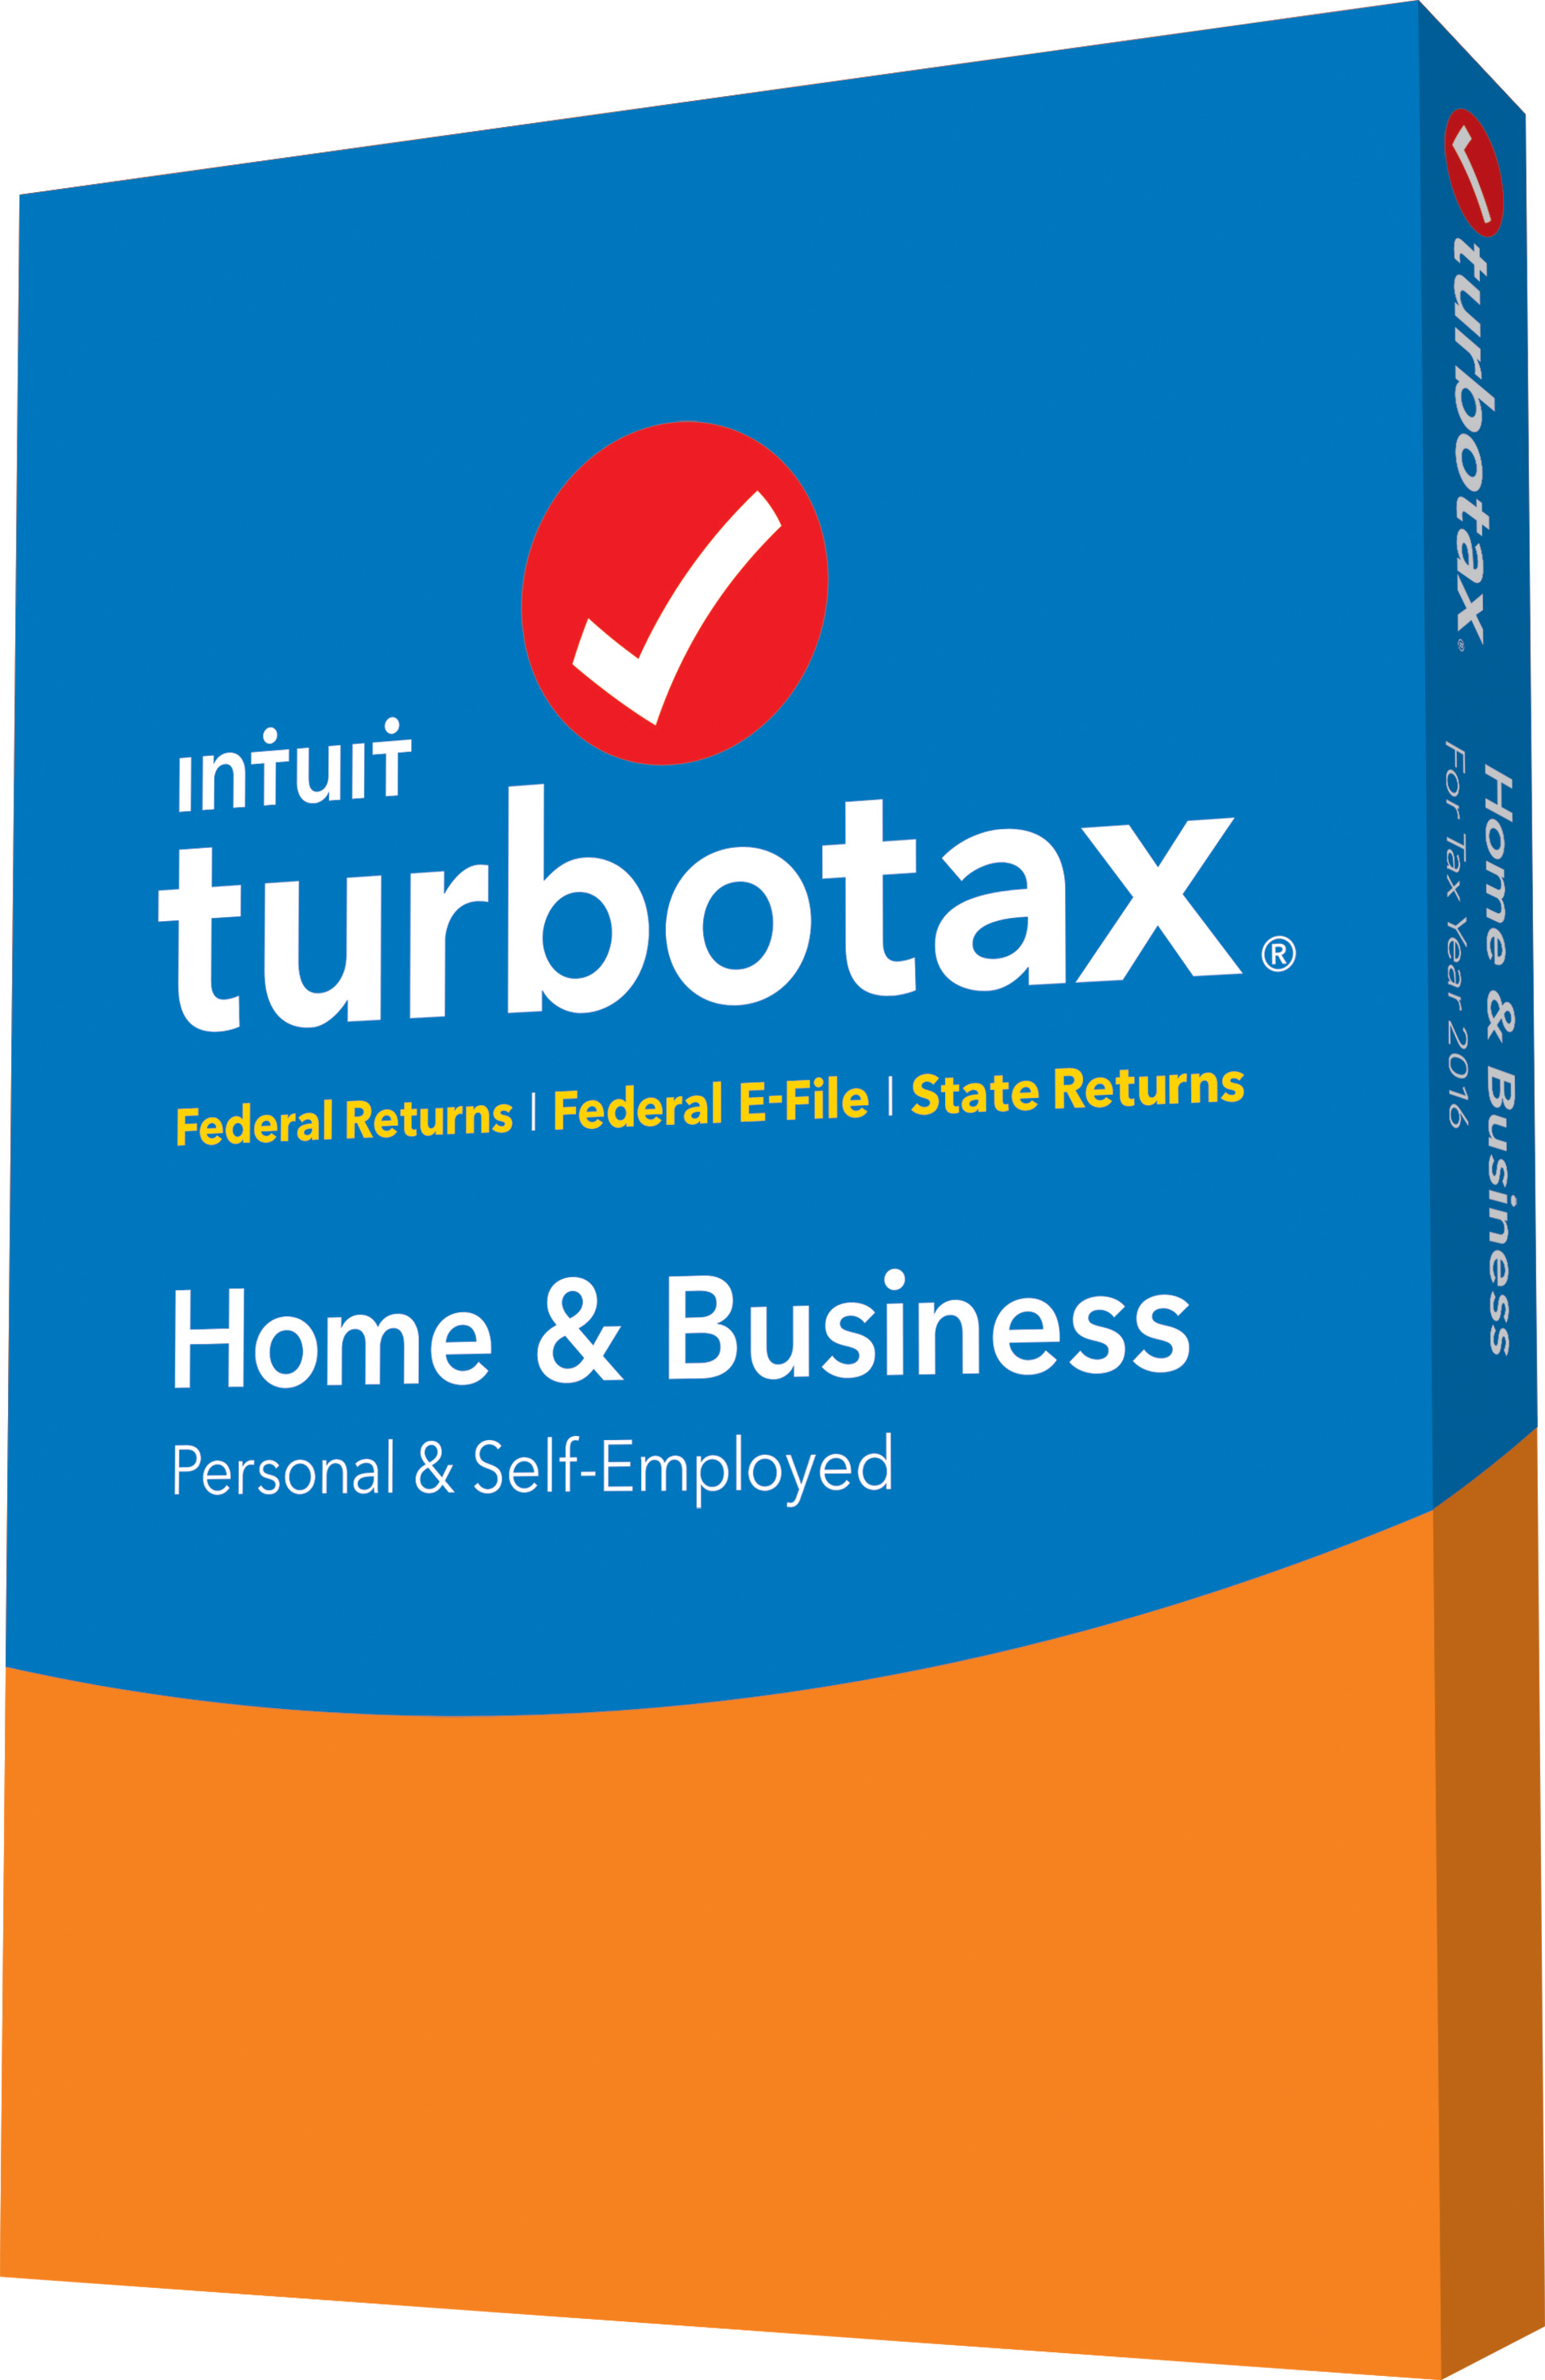 TaxAct makes filing your state and federal tax return easy with step-by-step guides and free phone support. Maximum refund and $k accuracy guarantee. Start filing your taxes for free today!